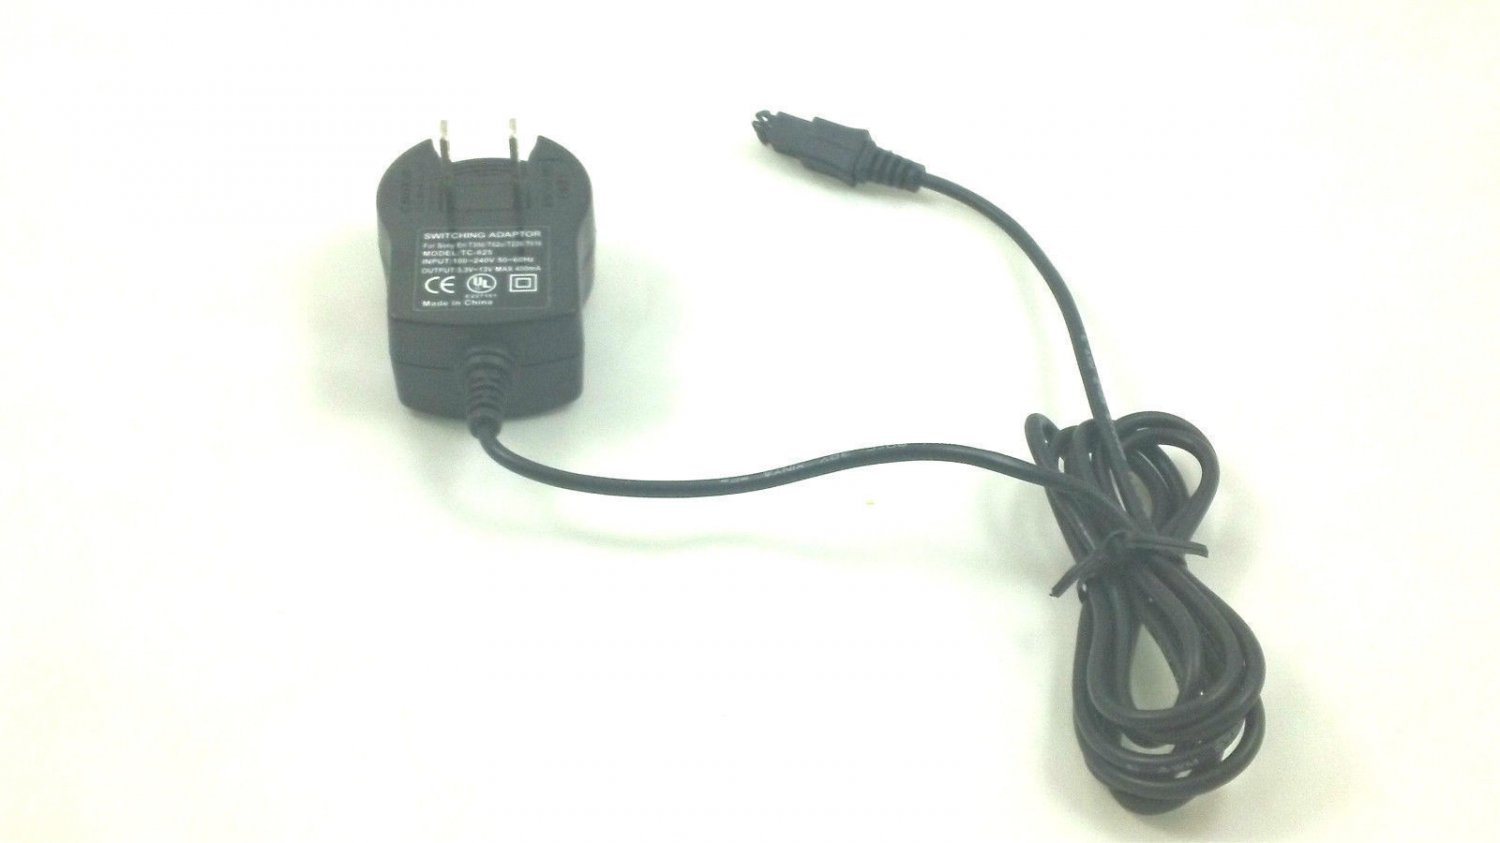 battery charger = Sony Ericsson T600 T300 cell phone wall plug power adapter PSU